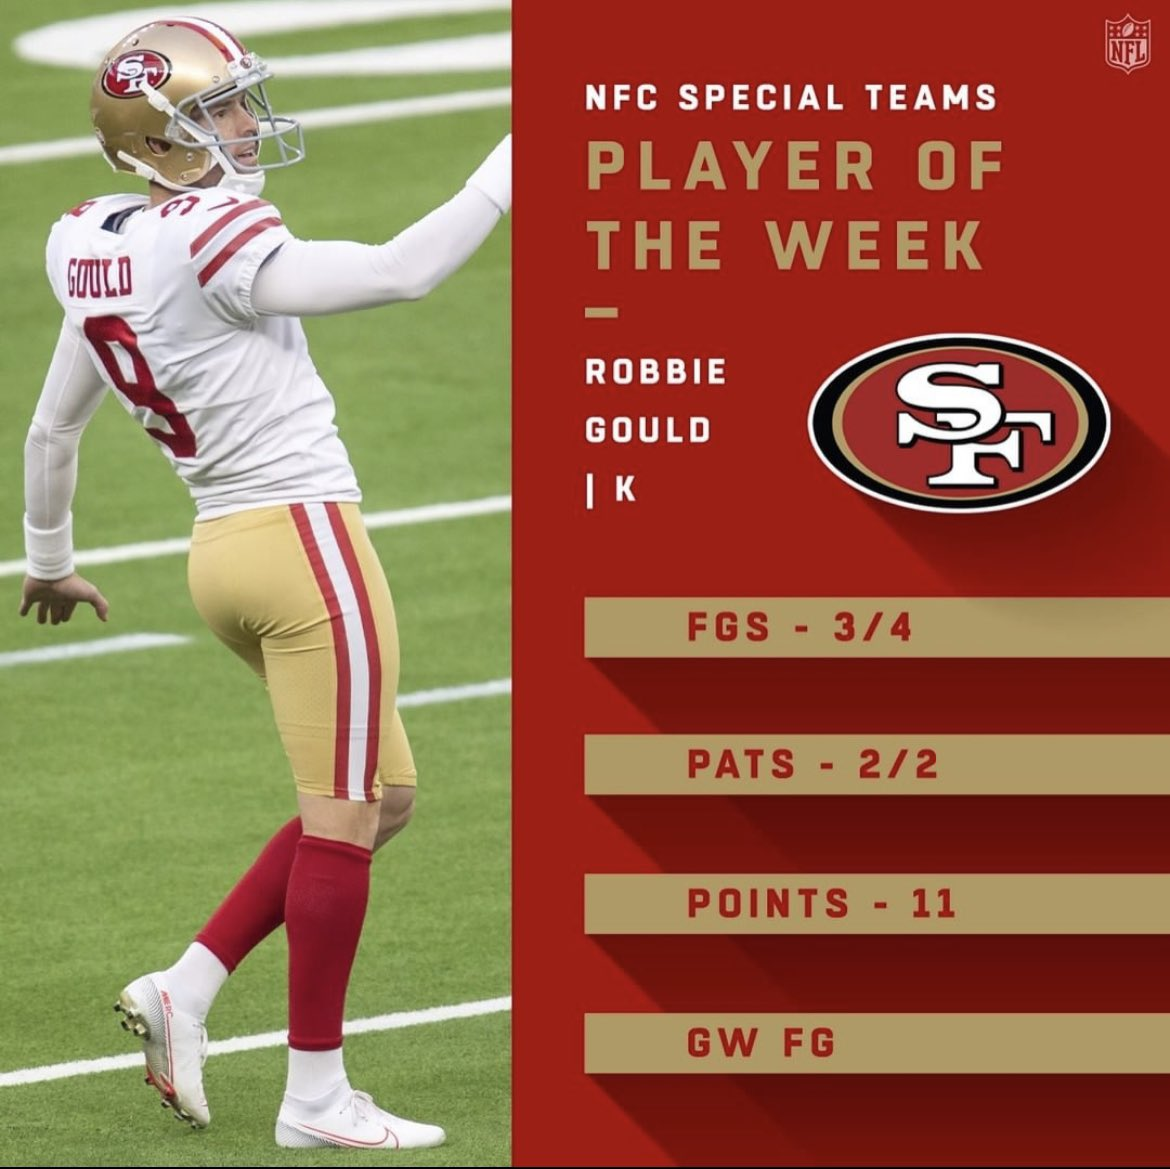 Robbie Gould NFC Special Teams Player of the Week #49ers #FTTB #NFLse